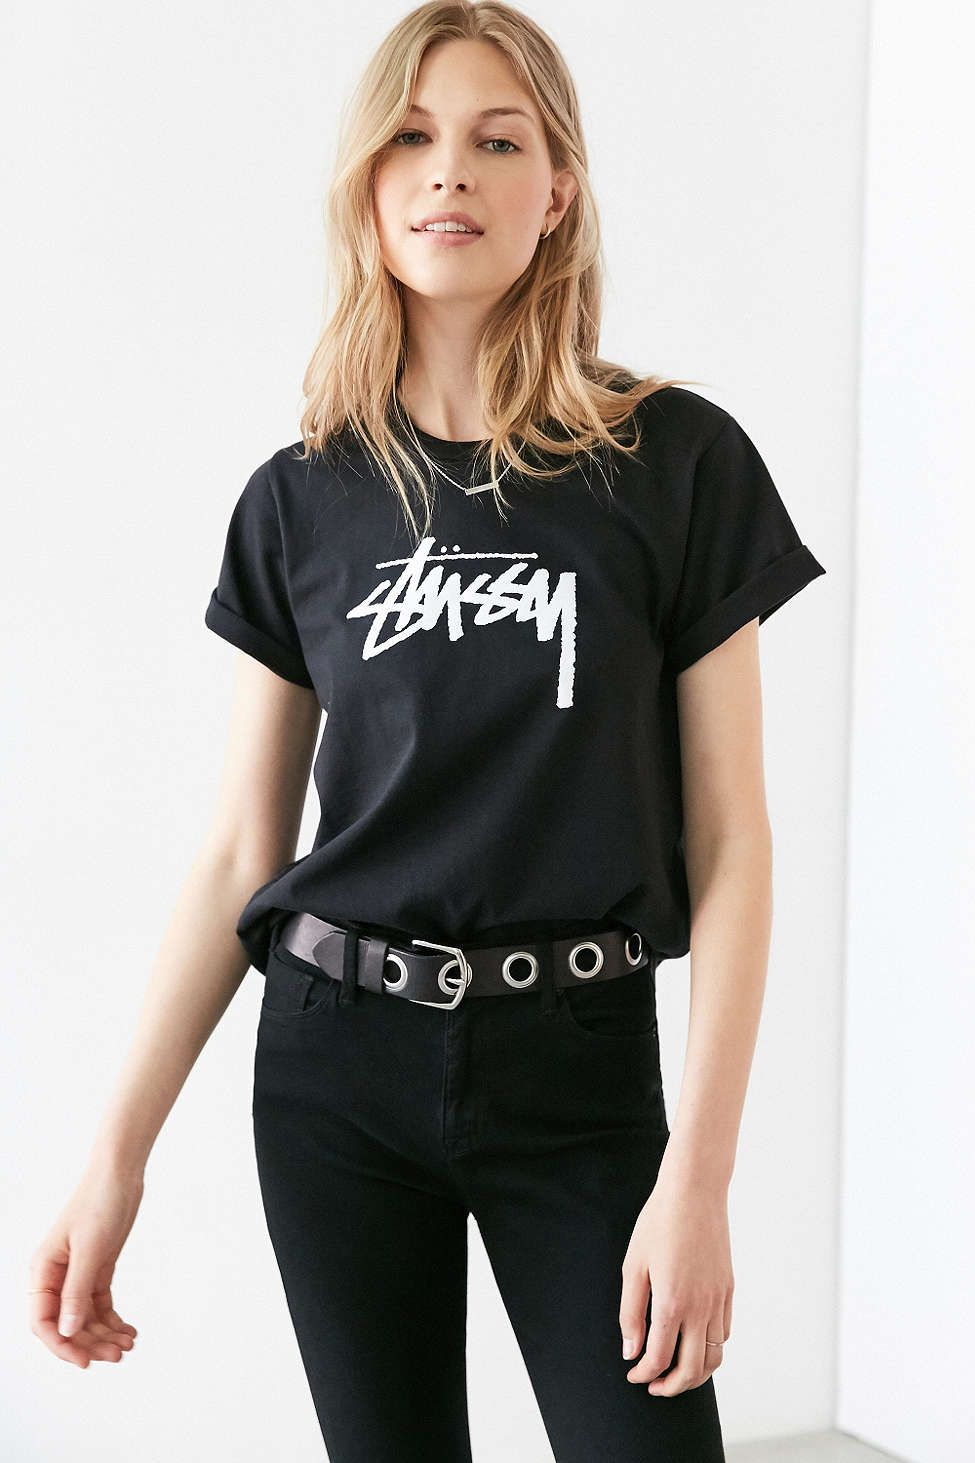 Stussy clothing for women